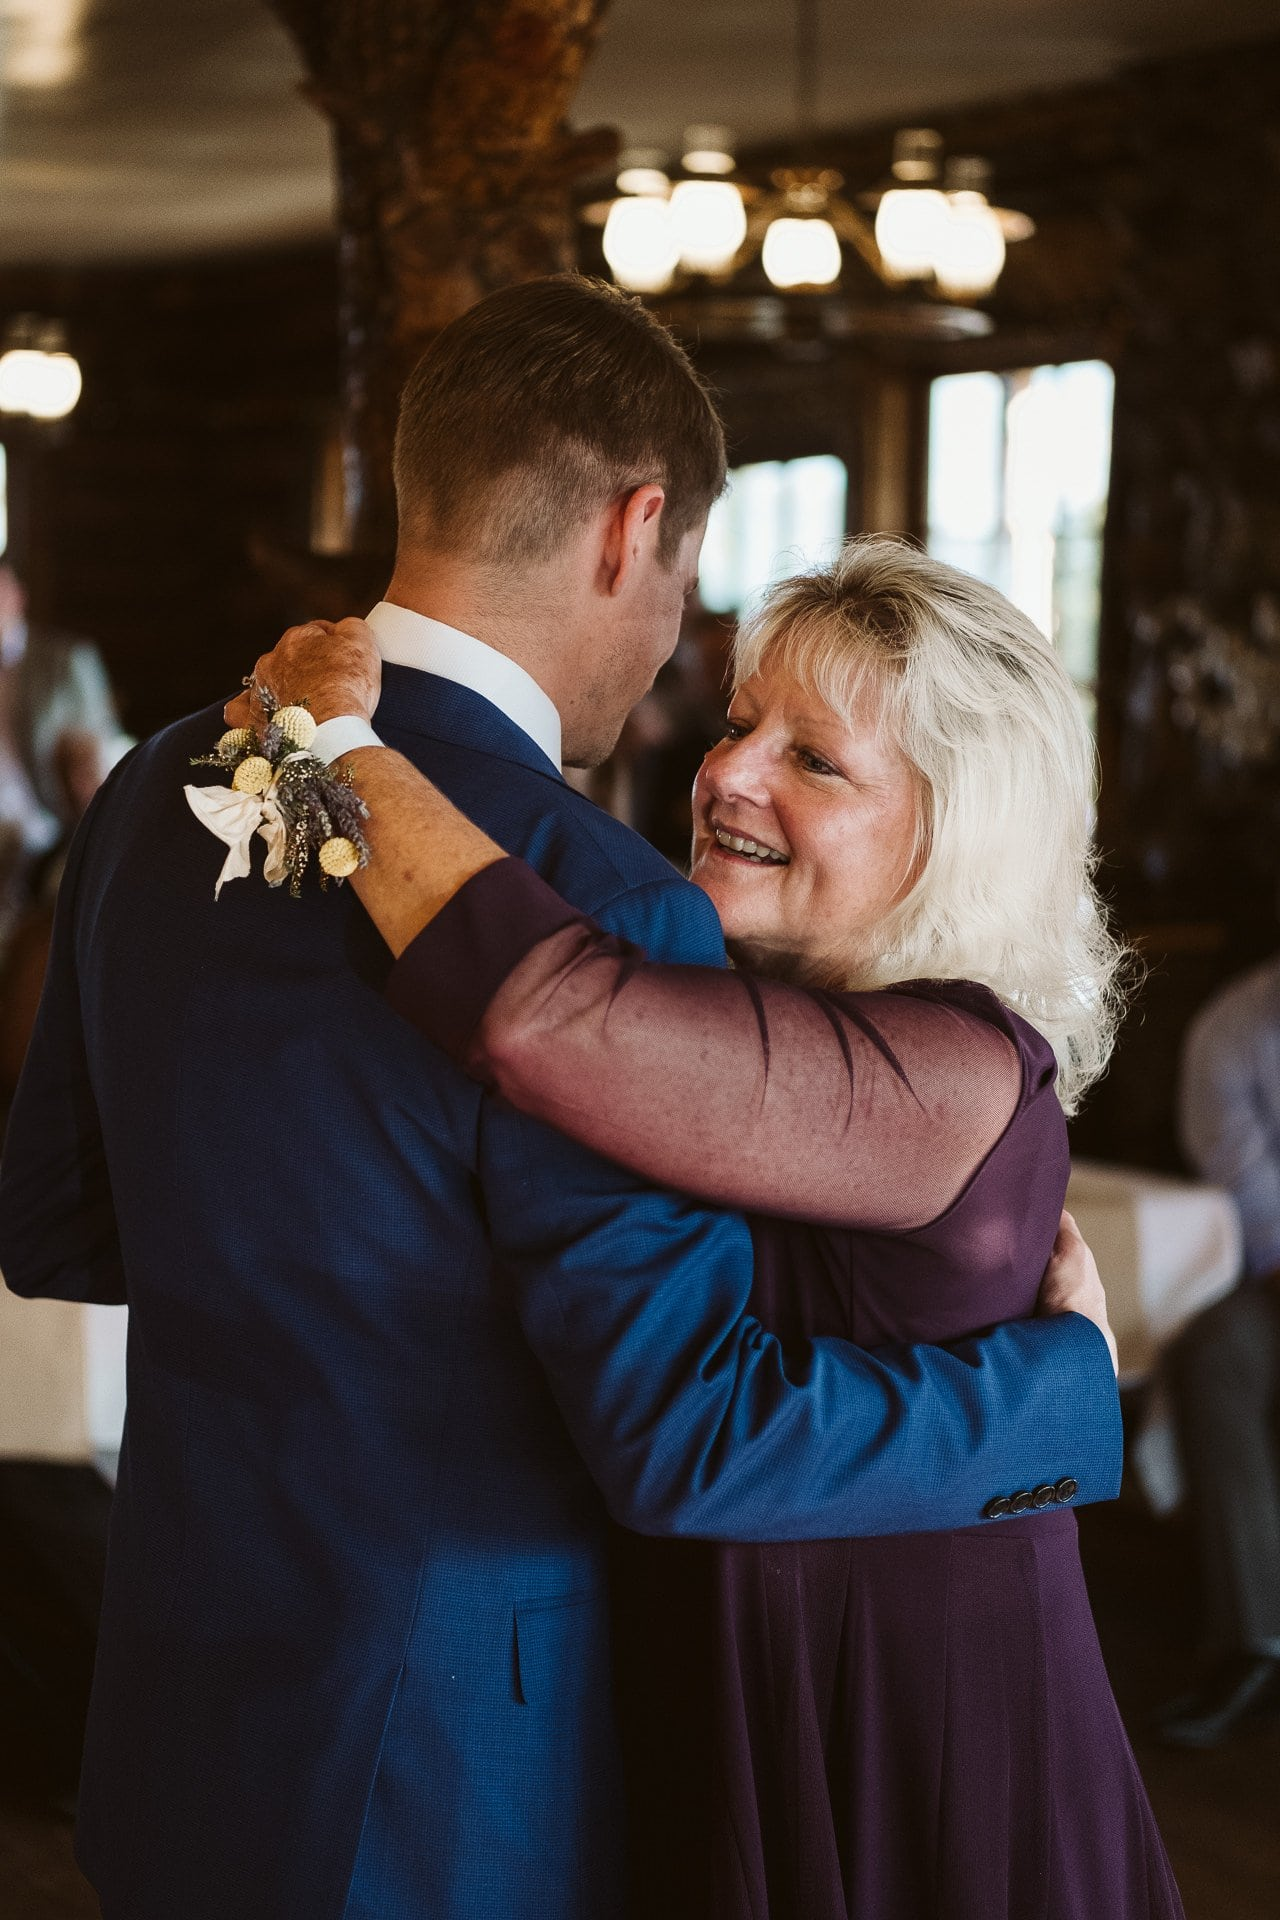 Mother and son dance at wedding at Colorado Mountain Ranch in Boulder